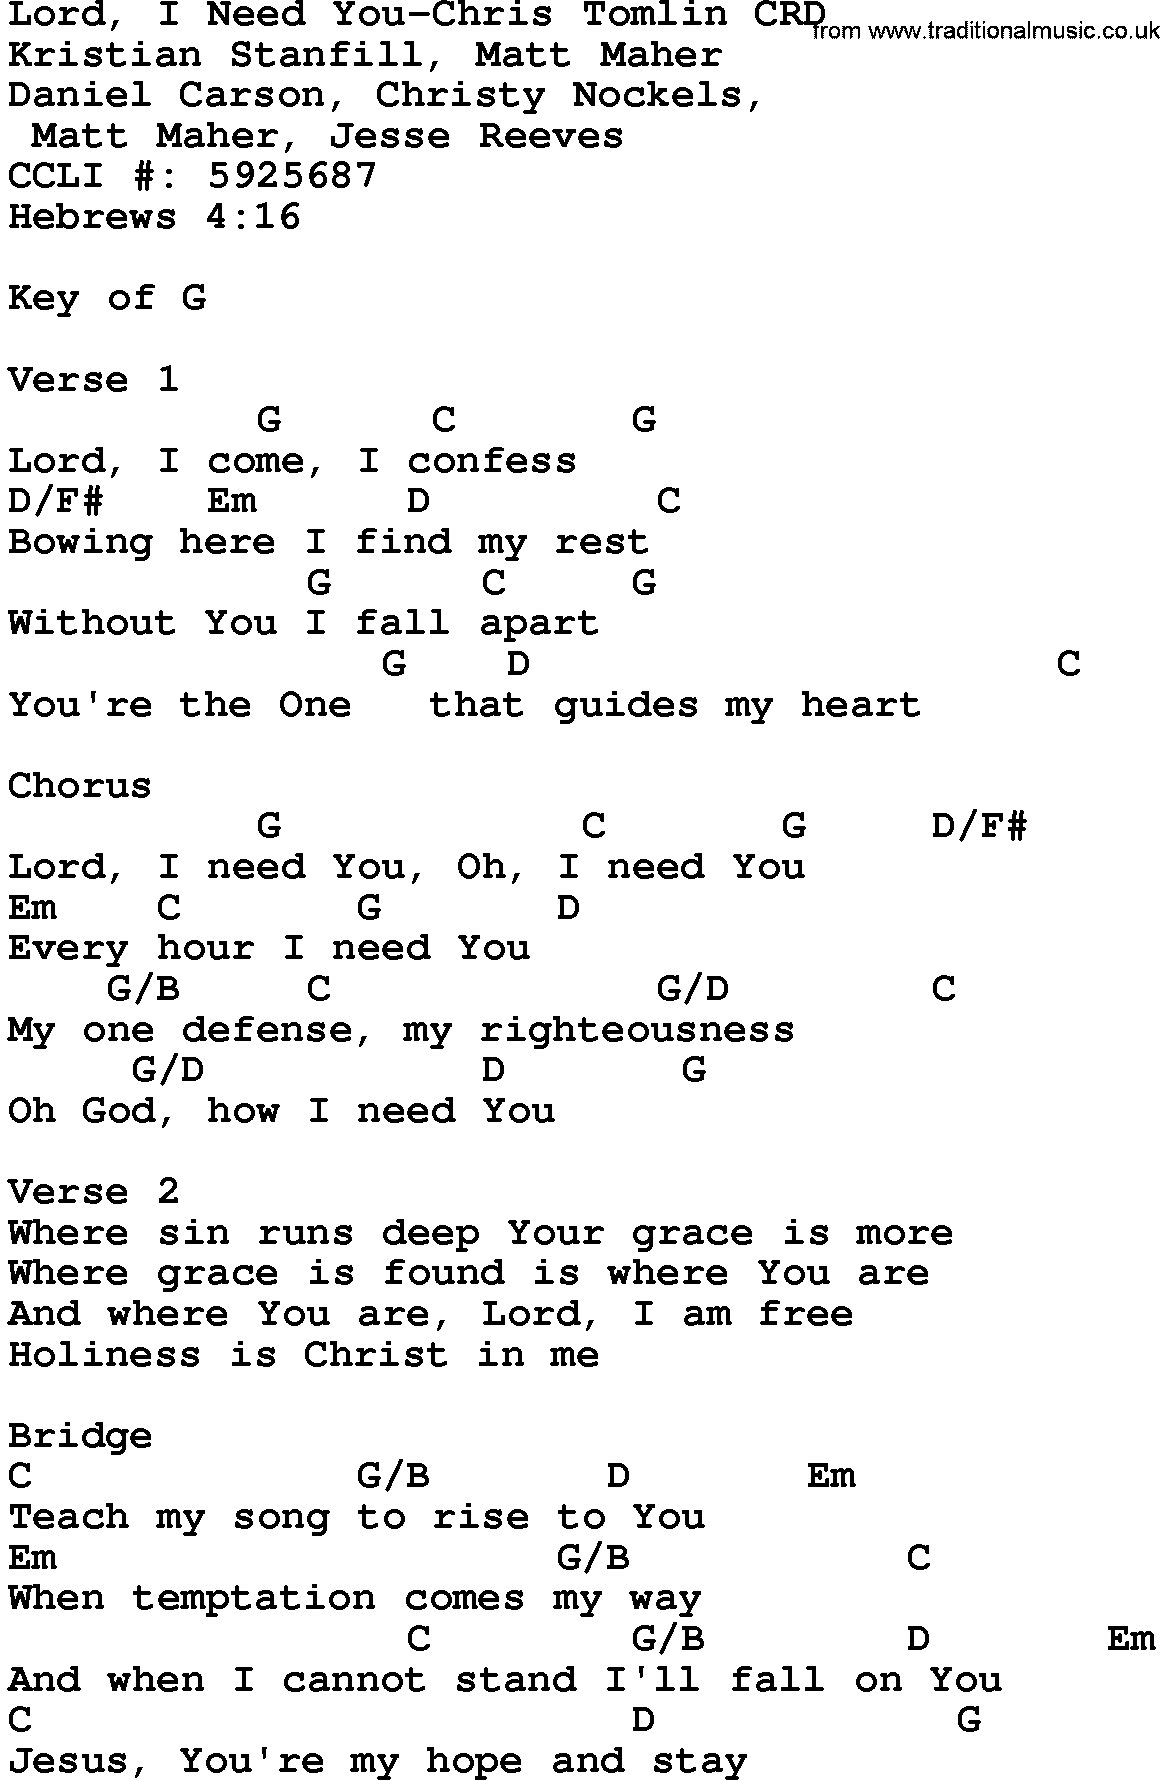 Gospel Song Lord I Need You Chris Tomlin lyrics and chords